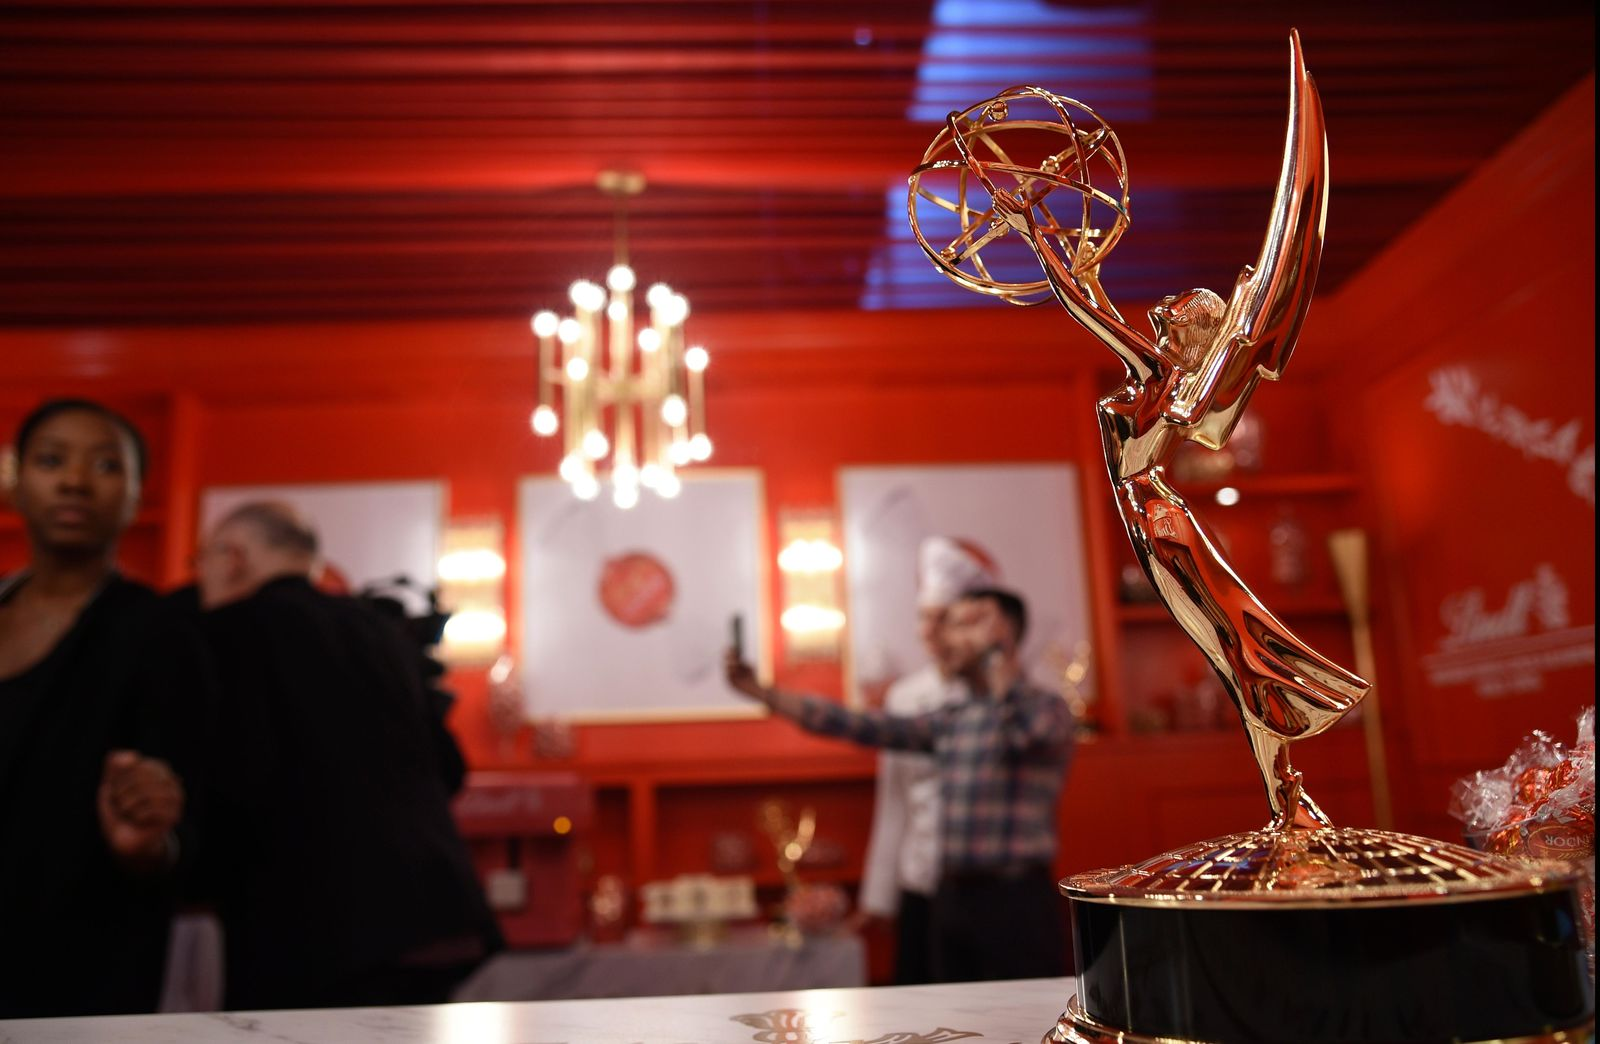 An Emmy Award is pictured inside the Lindt Chocolate Lounge backstage during Press Preview Day for Sunday's 71st Primetime Emmy Awards, Thursday, Sept. 19, 2019, at the Microsoft Theater in Los Angeles. (Photo by Chris Pizzello/Invision/AP)